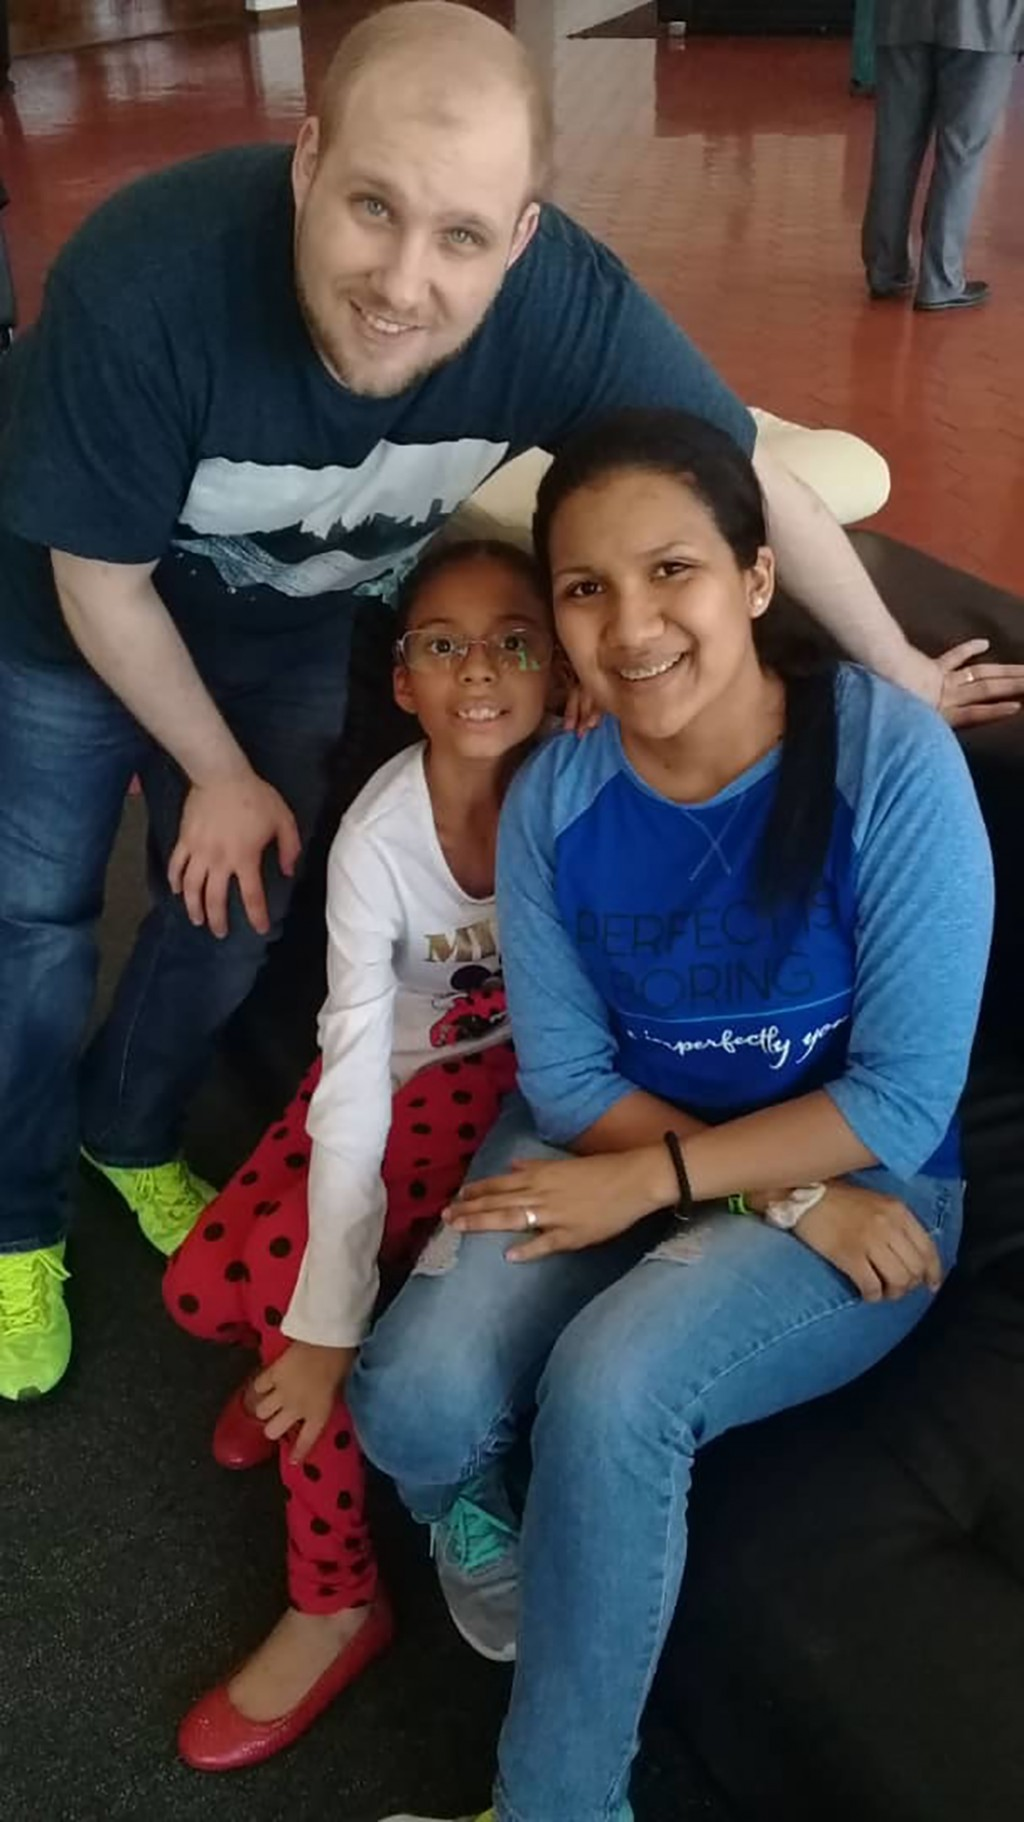 ADDS NAME OF DAUGHTER - In this image provided by the Holt family, Joshua Holt poses for a photo with his wife Thamara and her daughter Marian Leal, a...